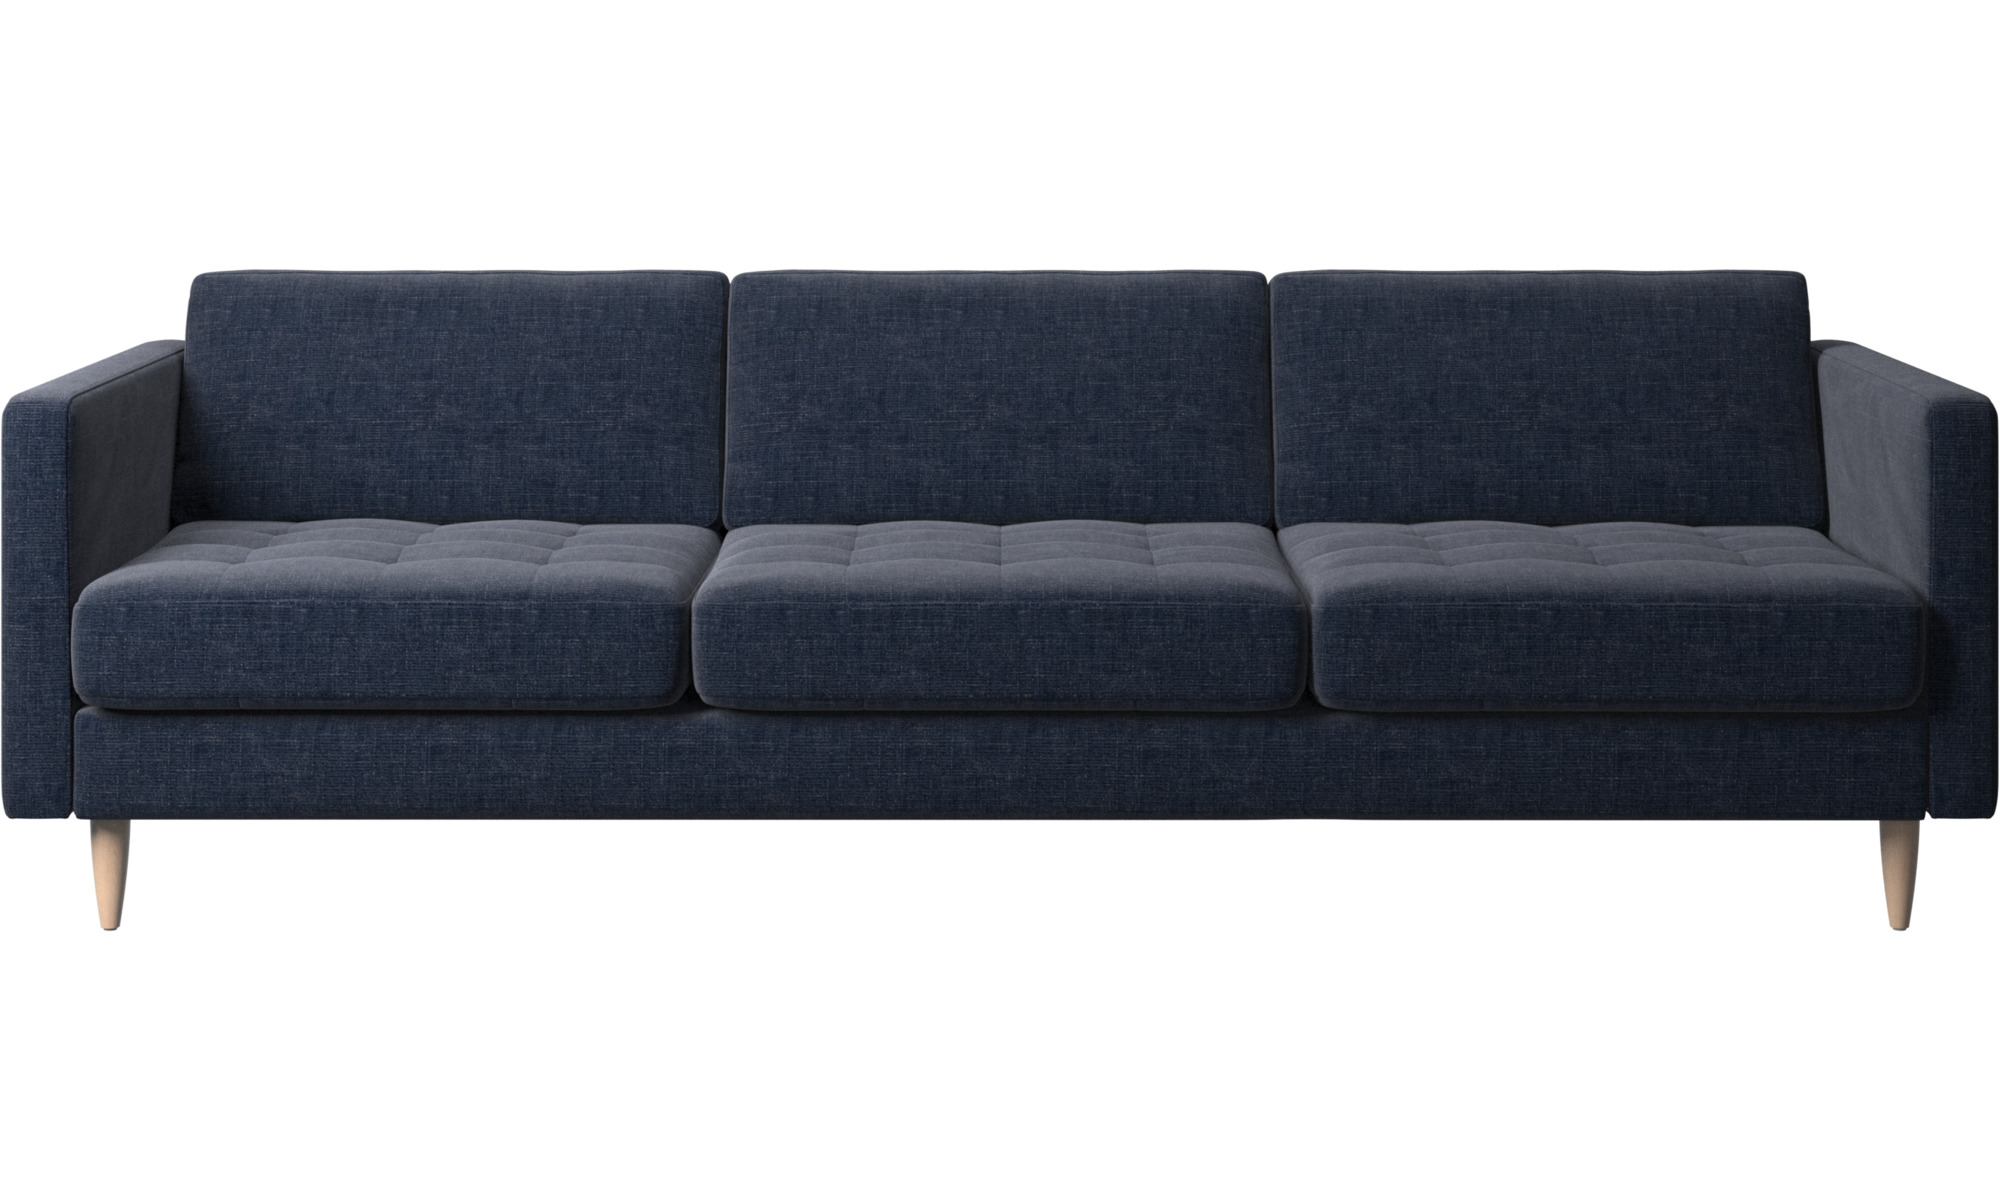 3 seater sofas osaka sofa tufted seat boconcept. Black Bedroom Furniture Sets. Home Design Ideas